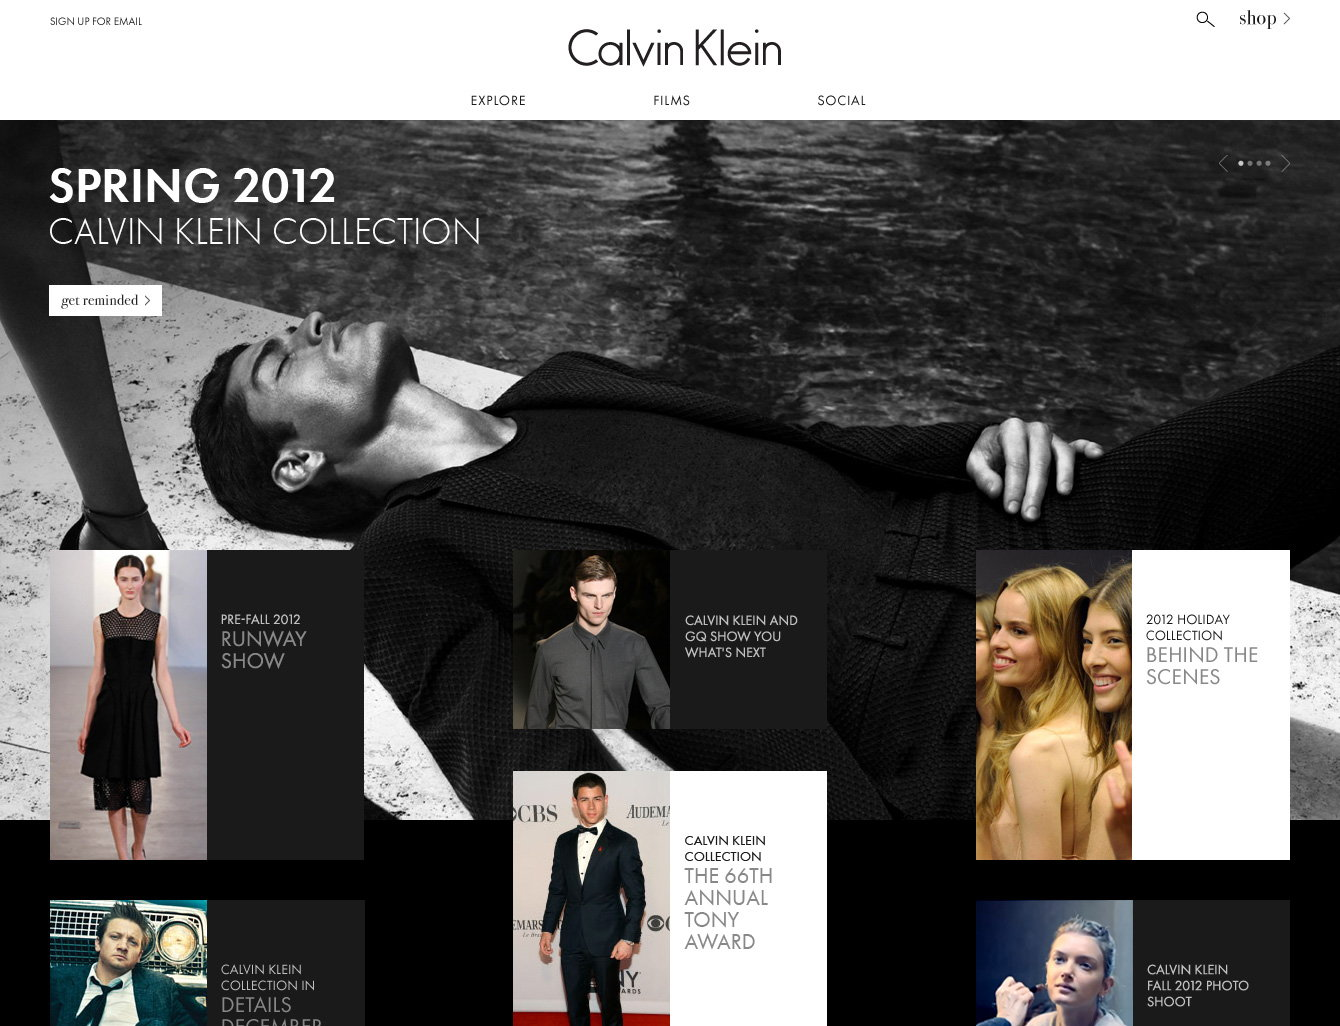 Calvin Klein Website HomePage